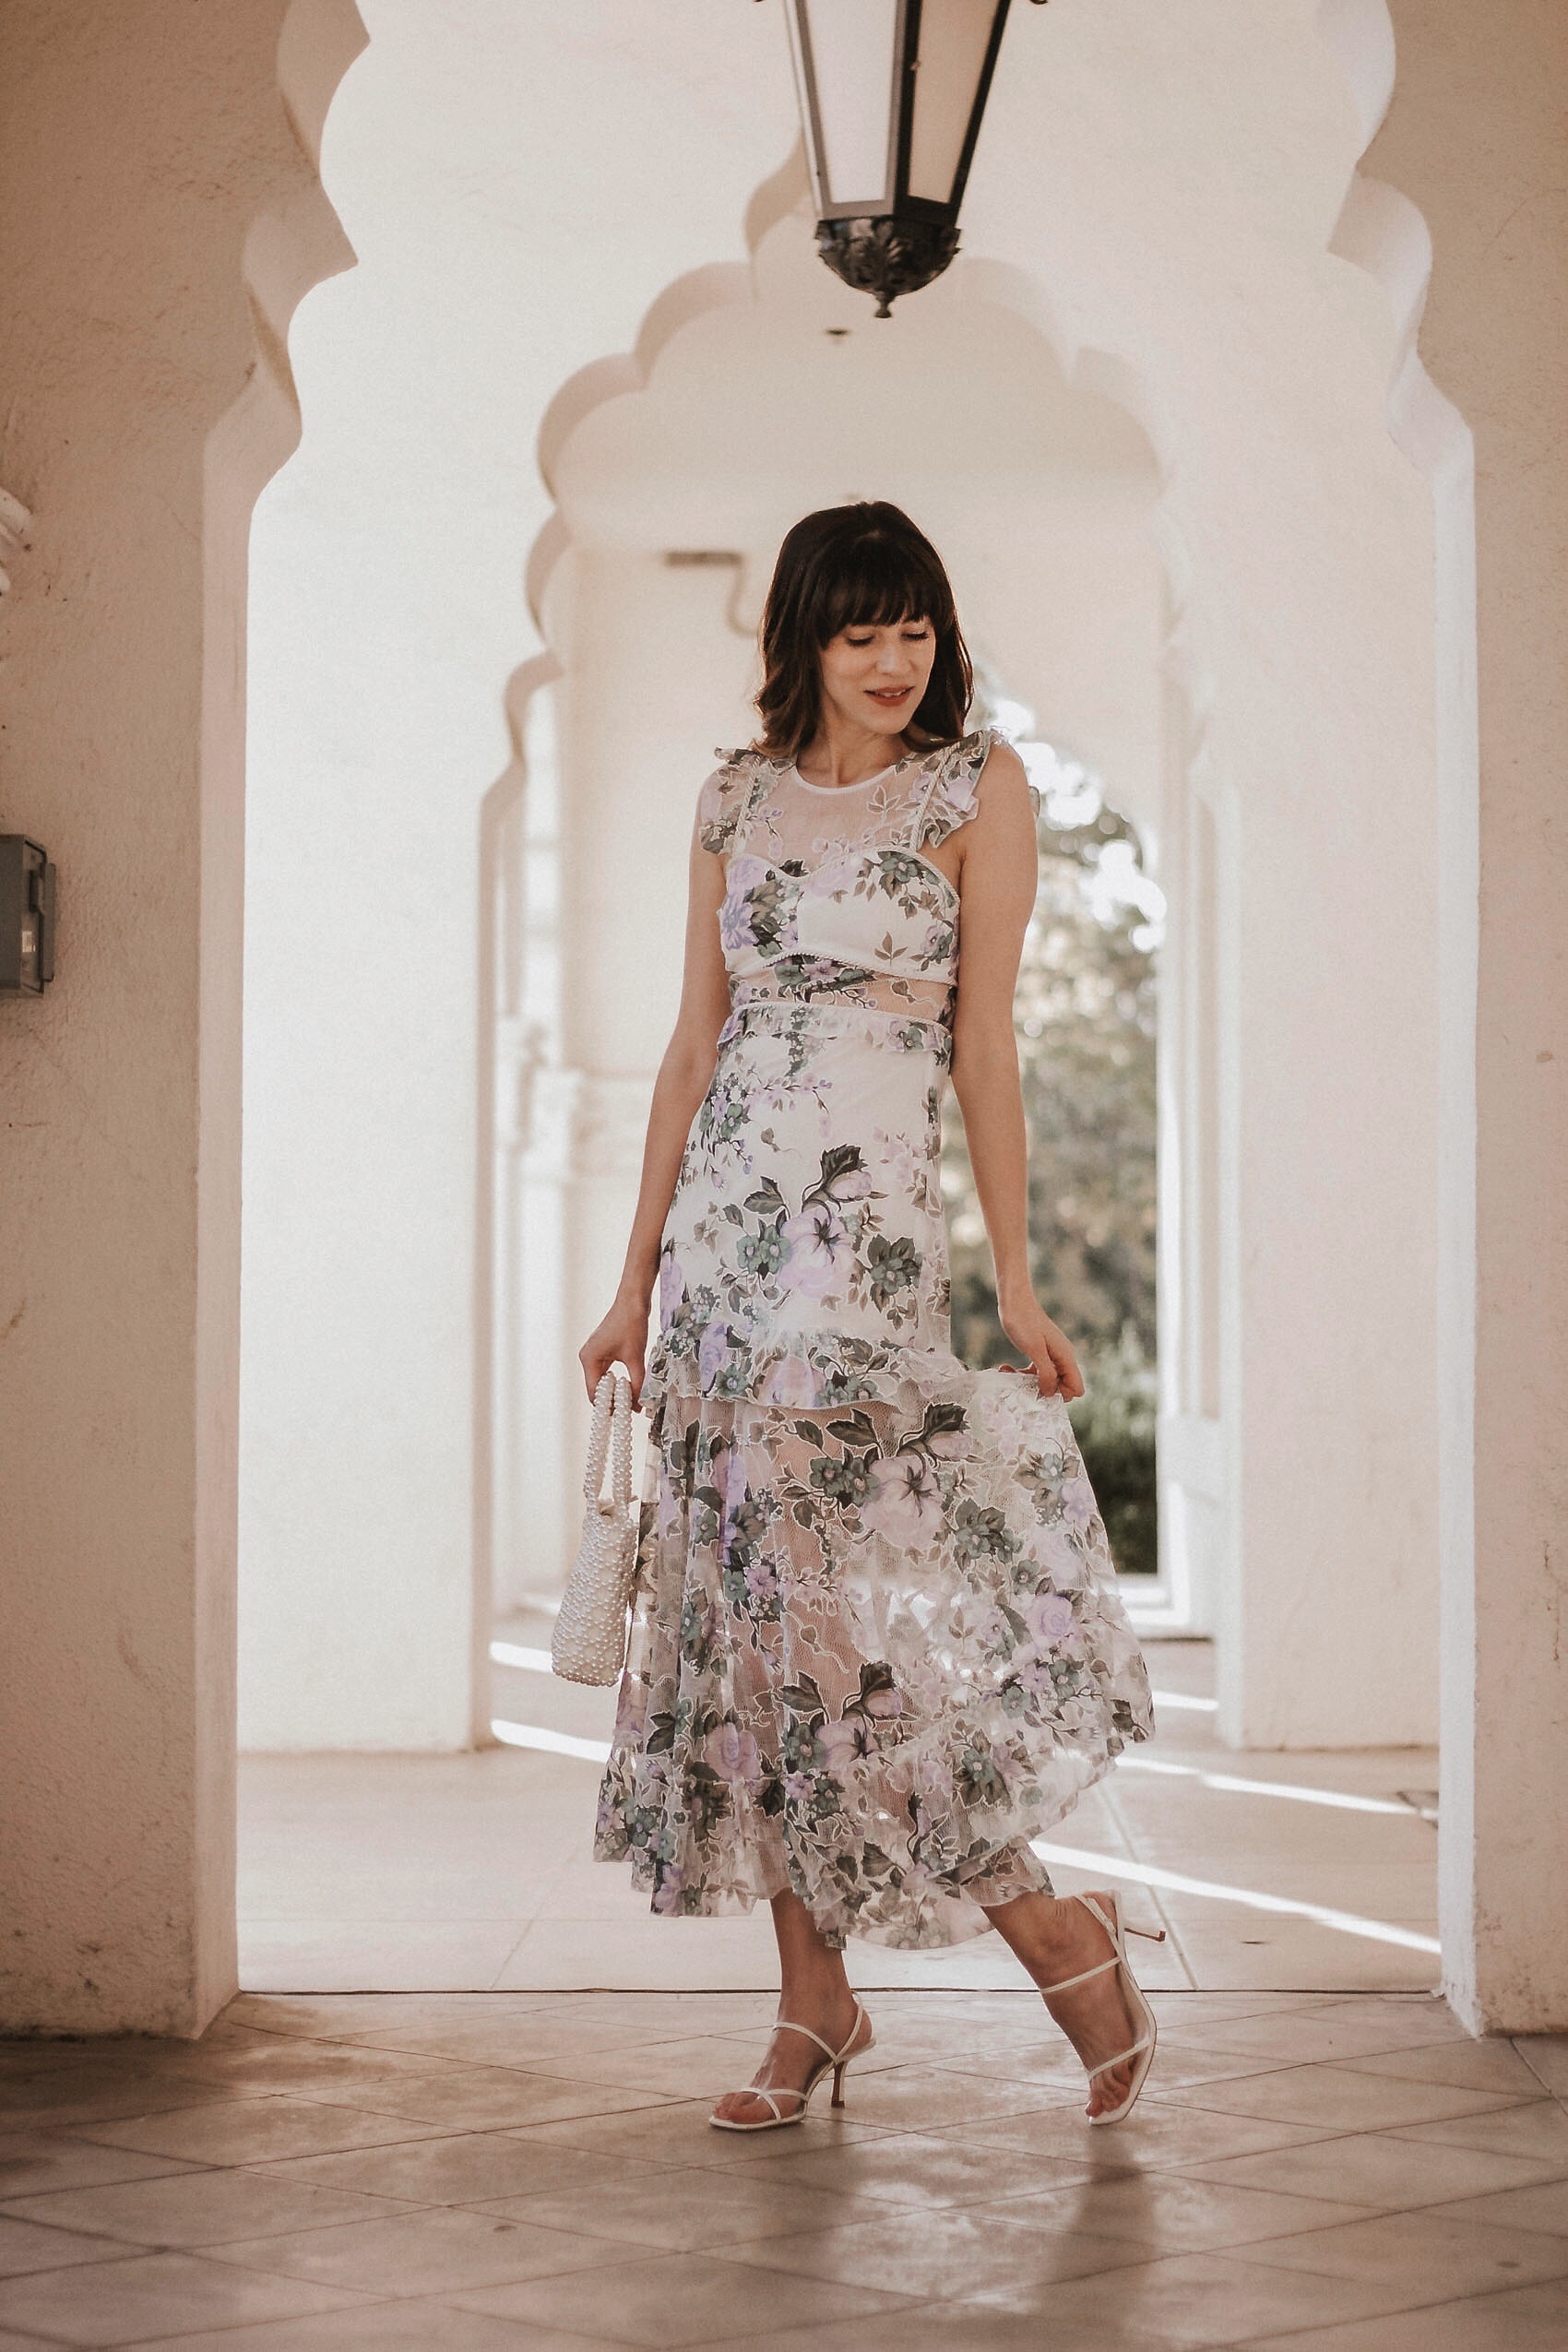 Best Spring Dresses from Milk Boutique, Best Designer Dresses for Spring